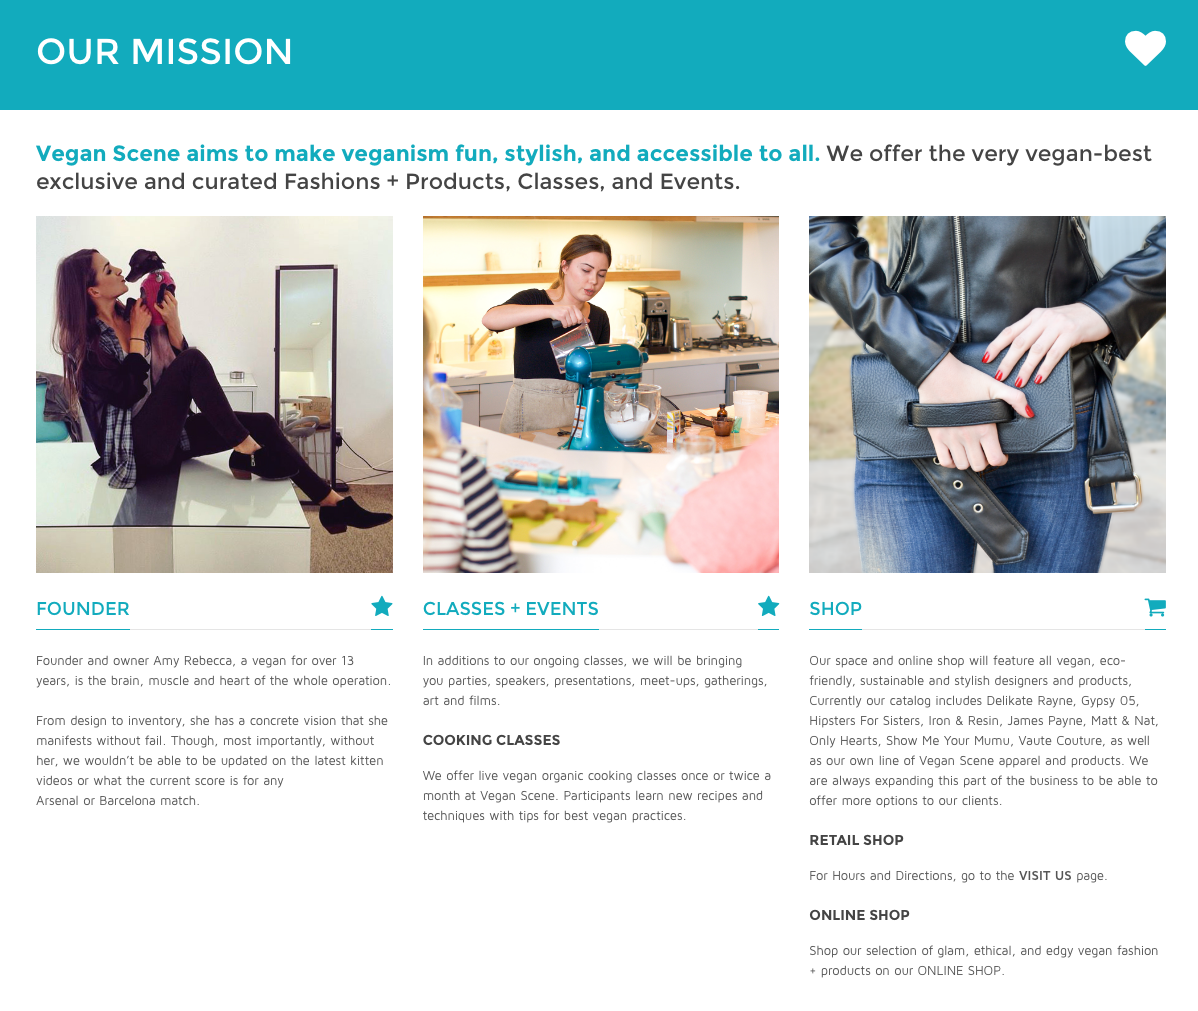 This mission statement from Vegan Scene makes the company's focus crystal clear to new visitors.